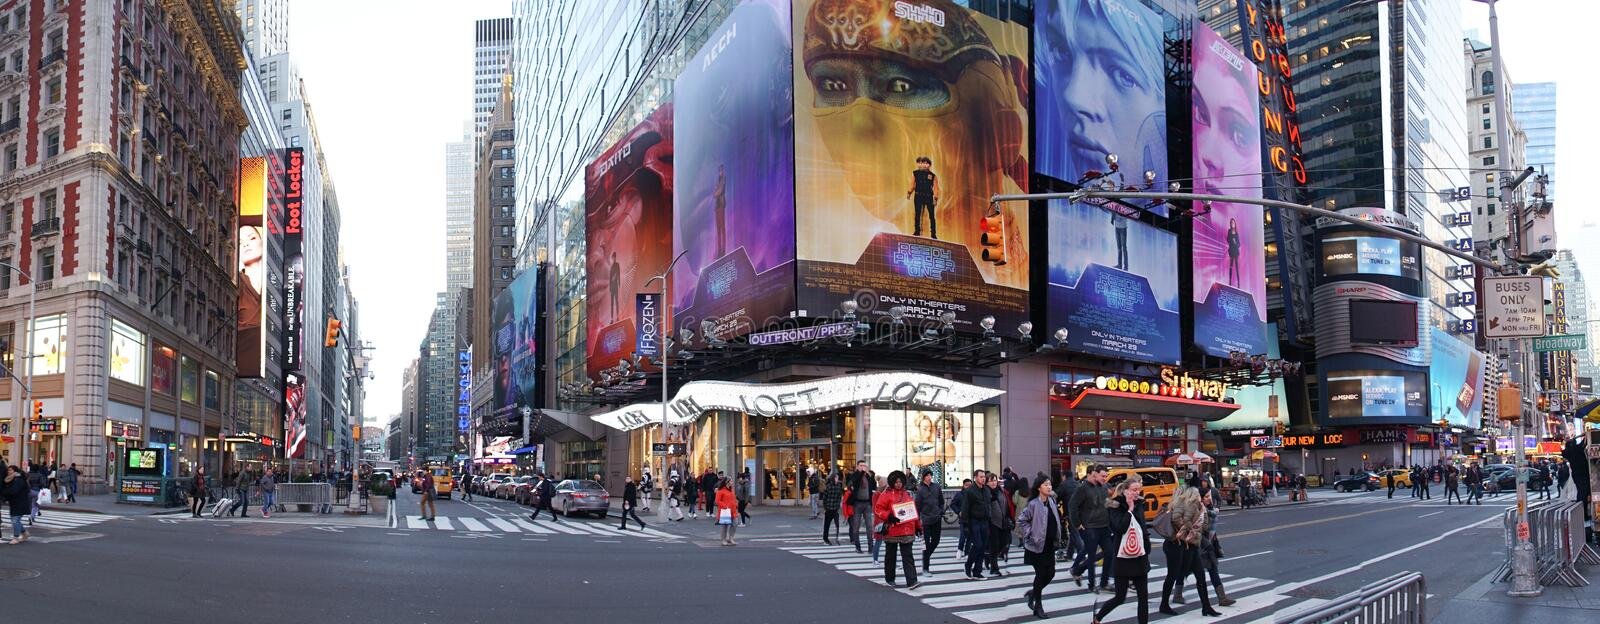 Time Square in Manhattan, New York City. stock photo